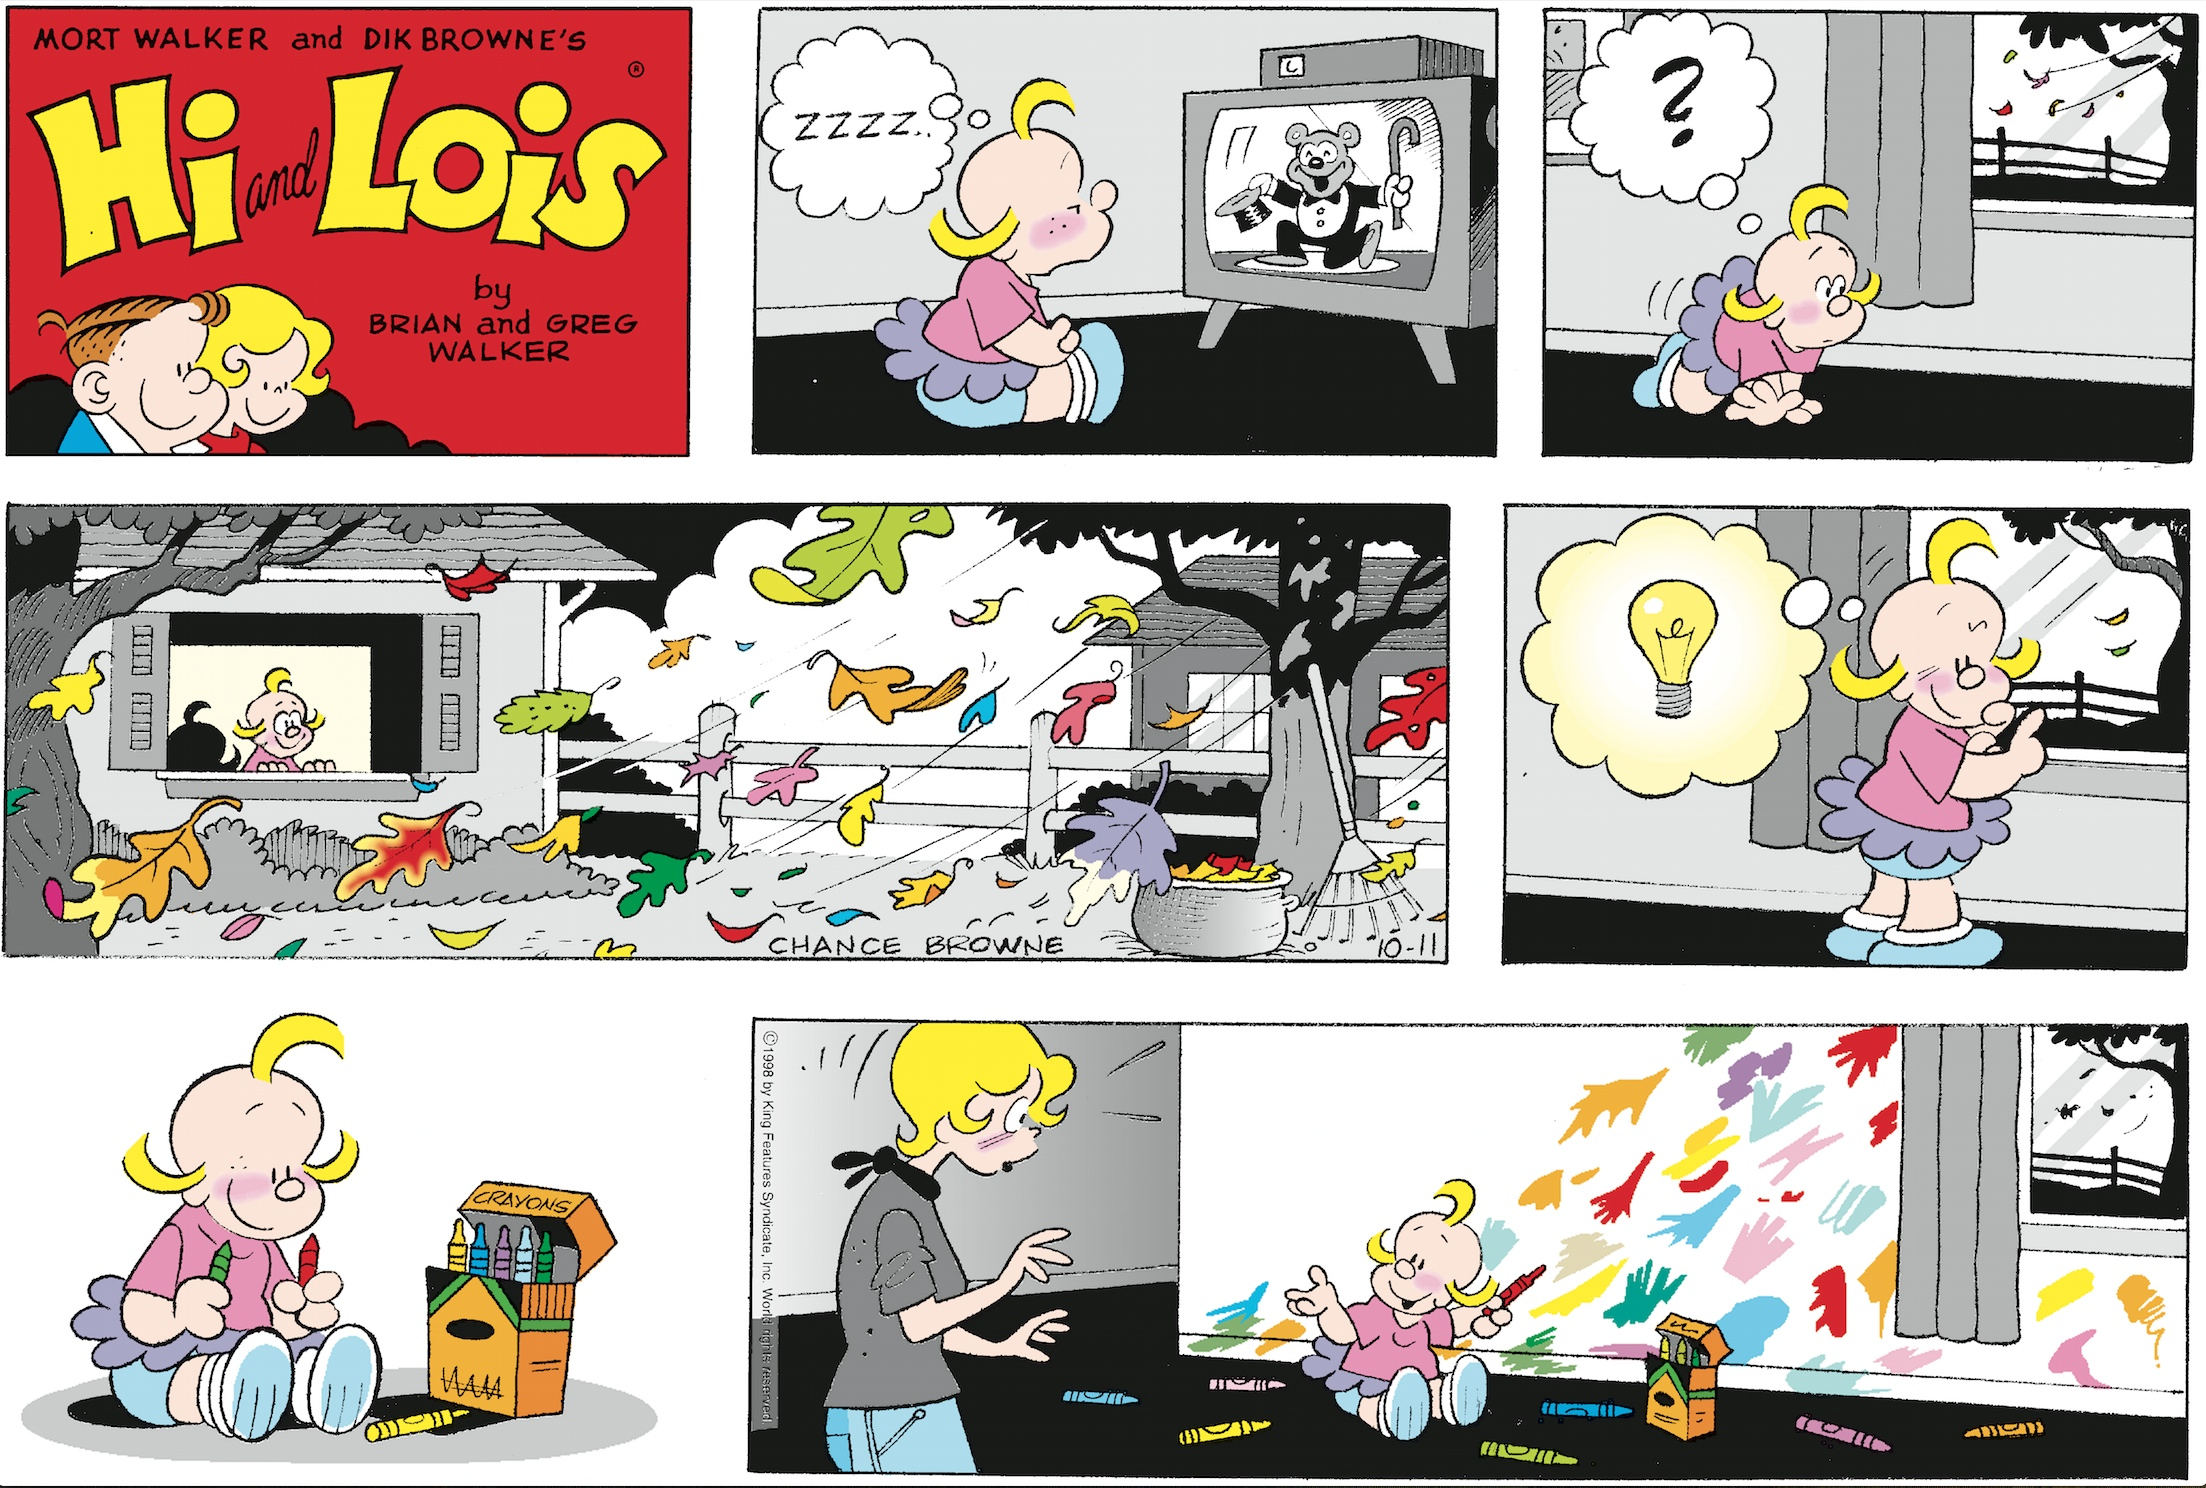 Hi and Lois Sunday page, October 11, 1998.